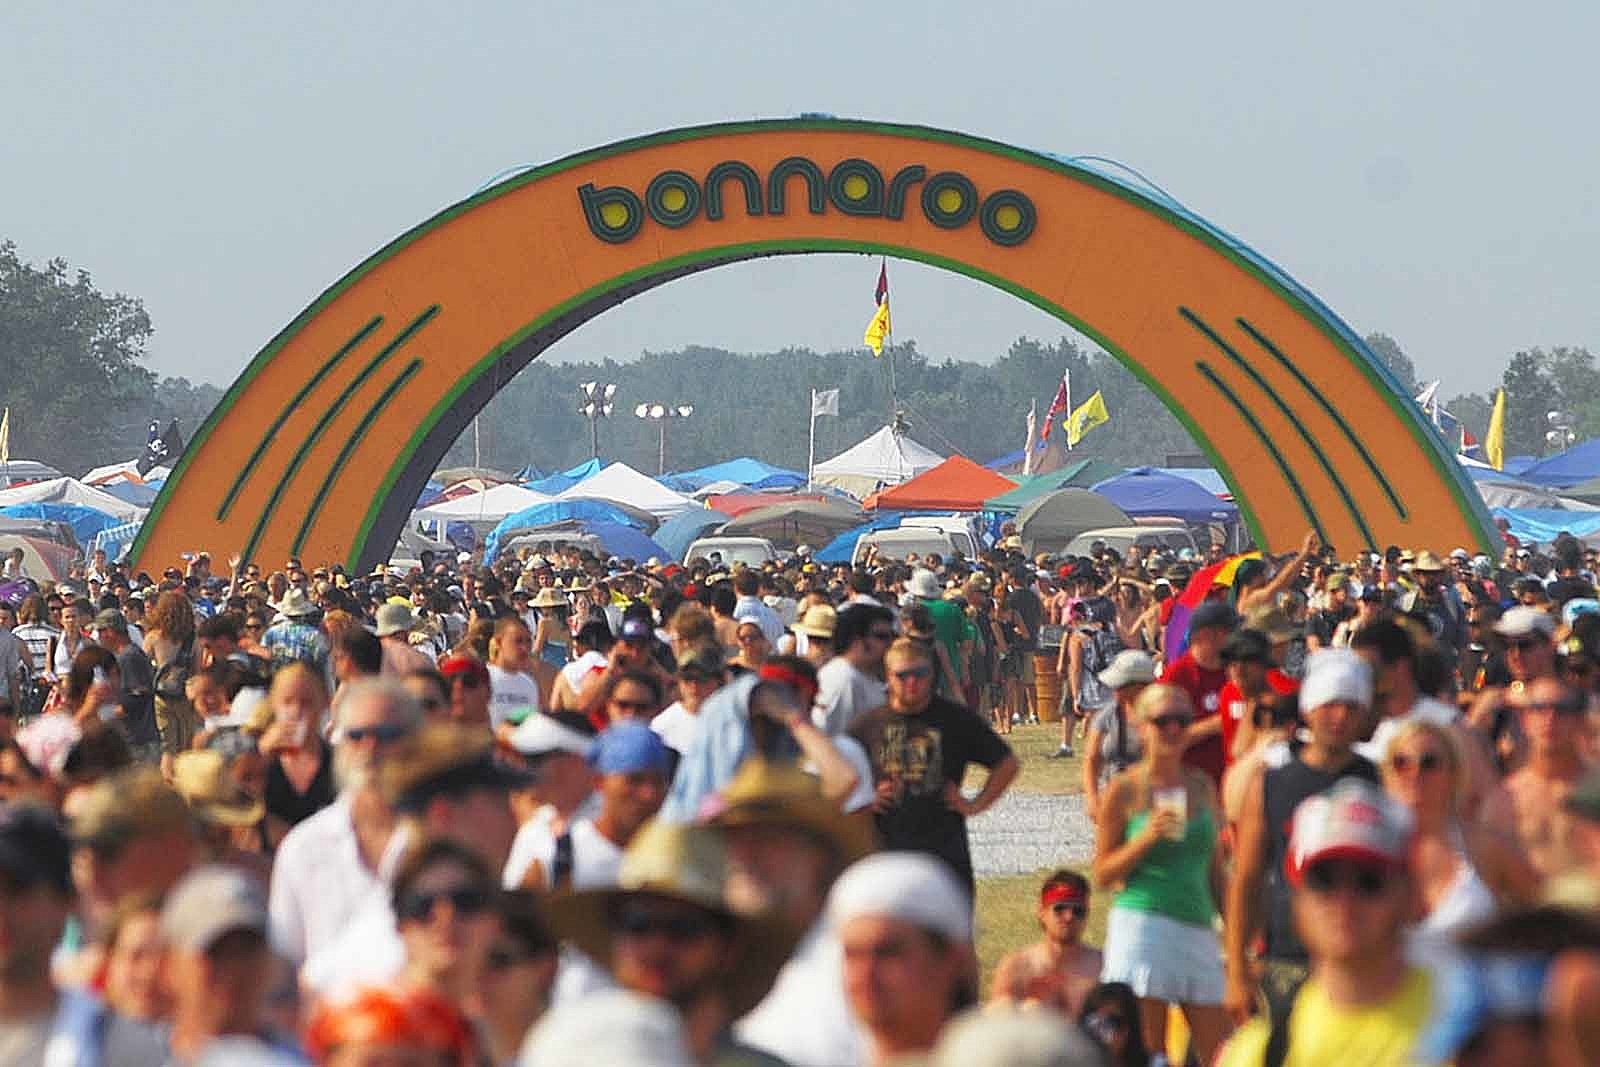 Bonnaroo Arch Destroyed by Fire